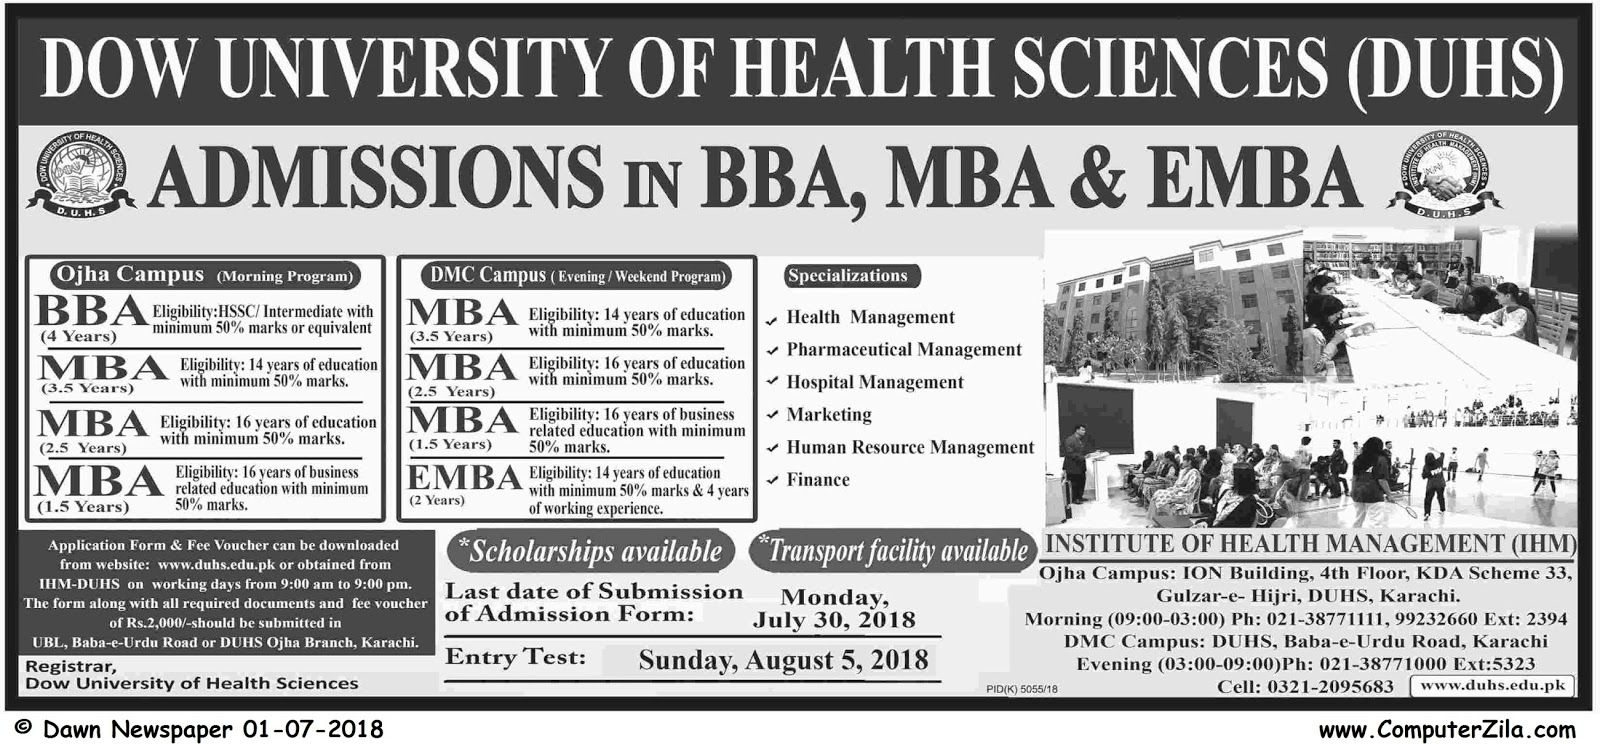 Dow University of Health Sciences Admissions Fall 2018